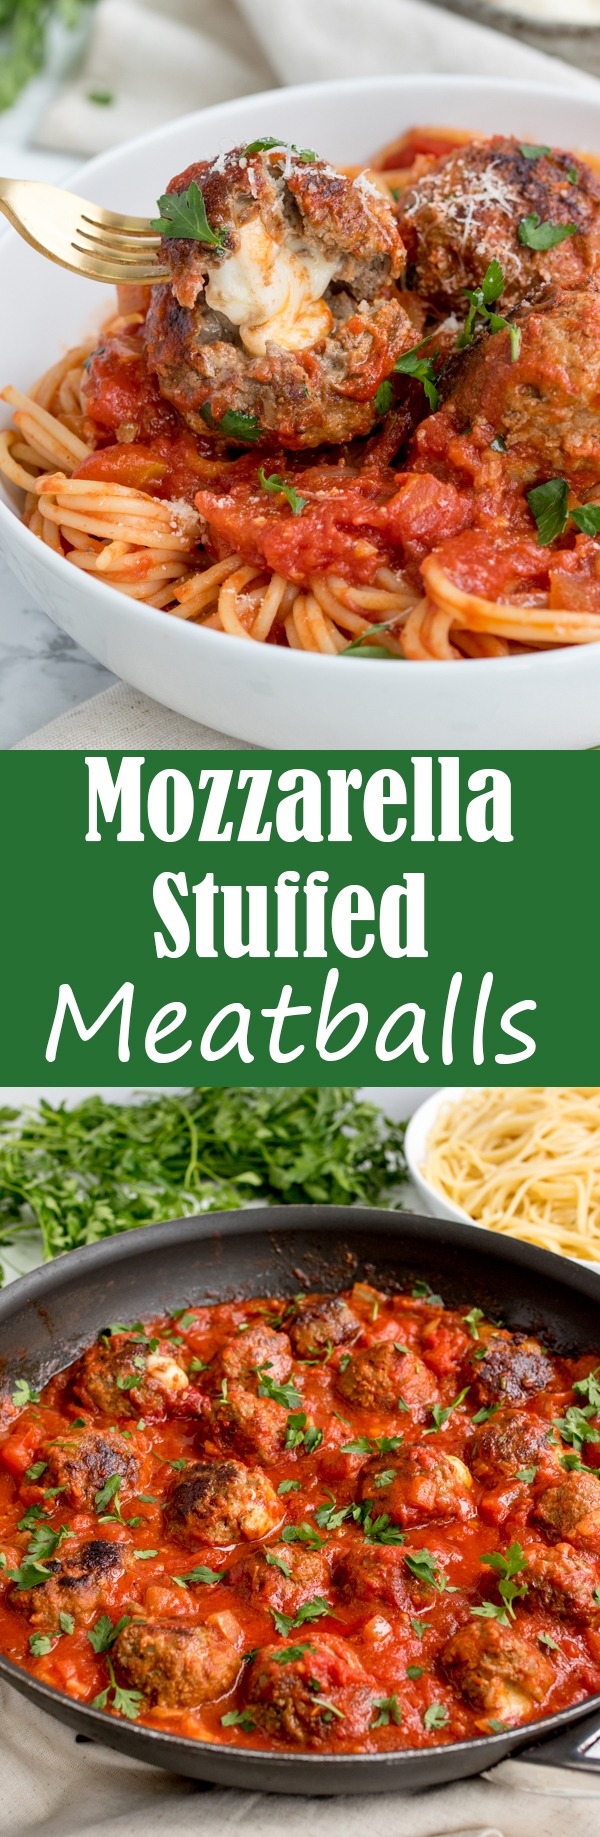 mozzarella stuffed meatballs pin